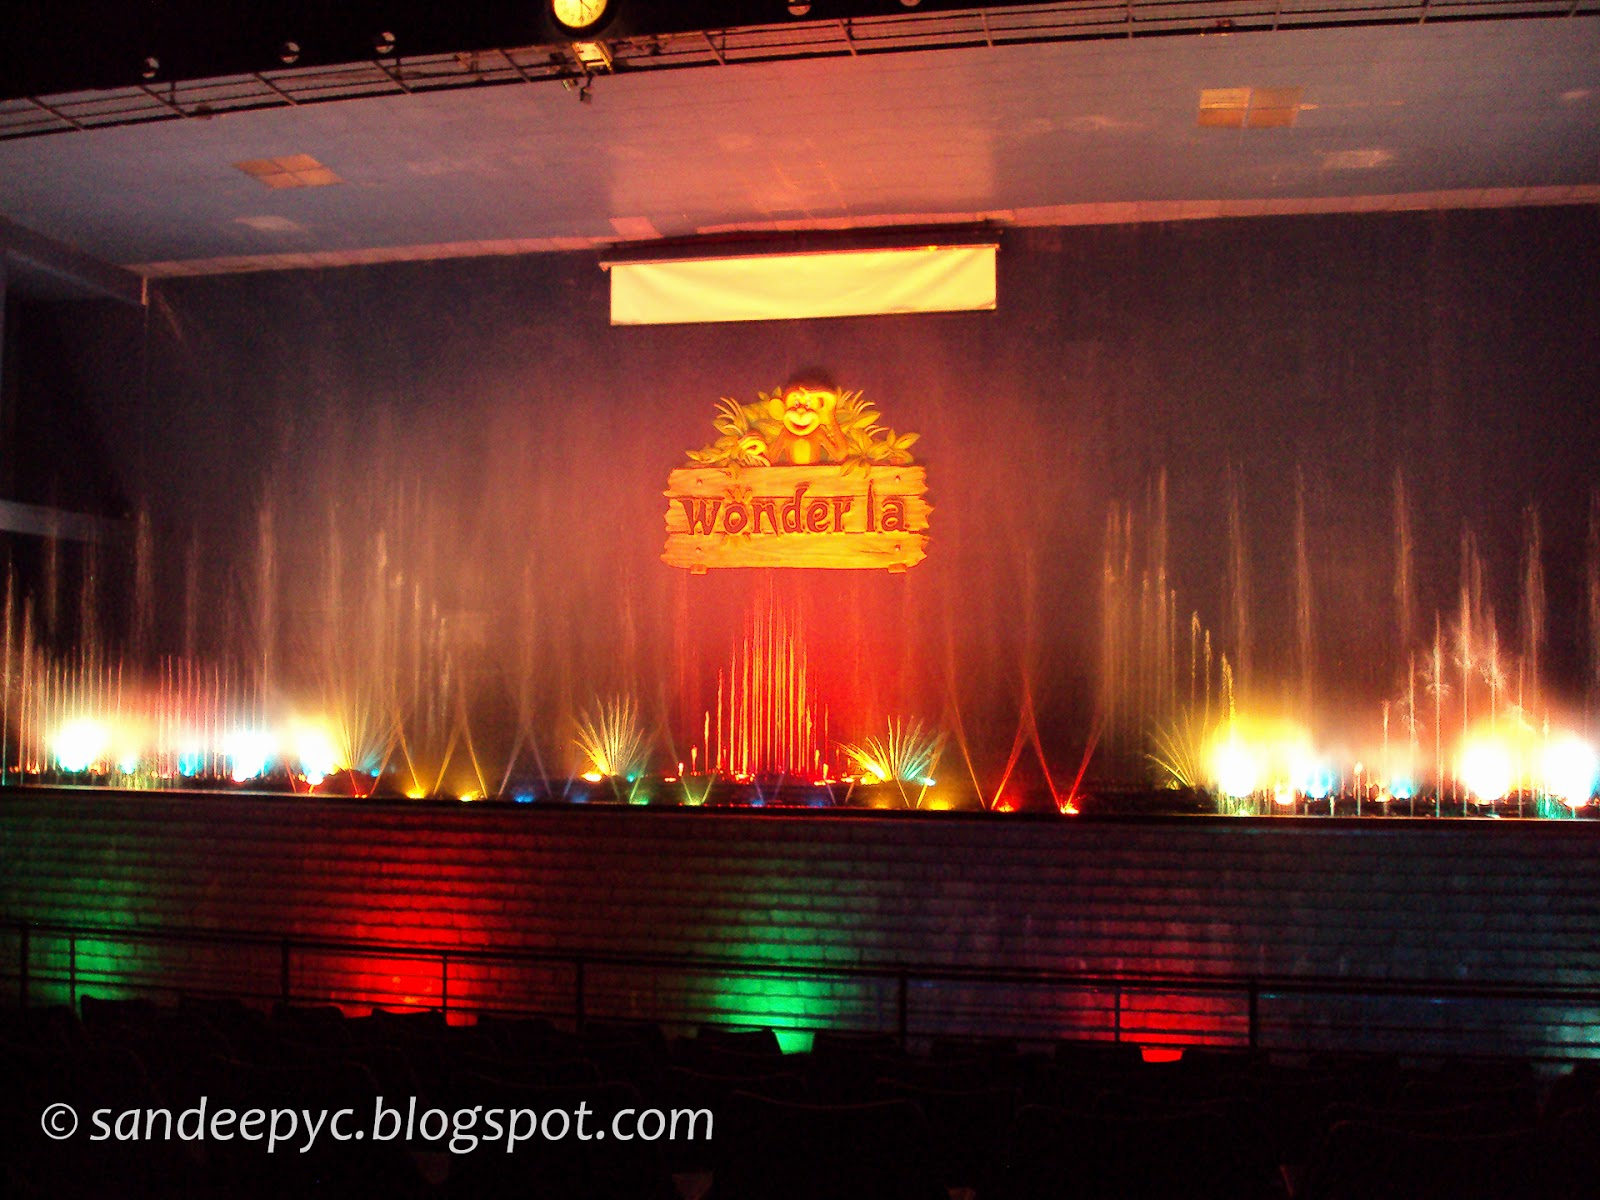 Musical fountain at WonderLa